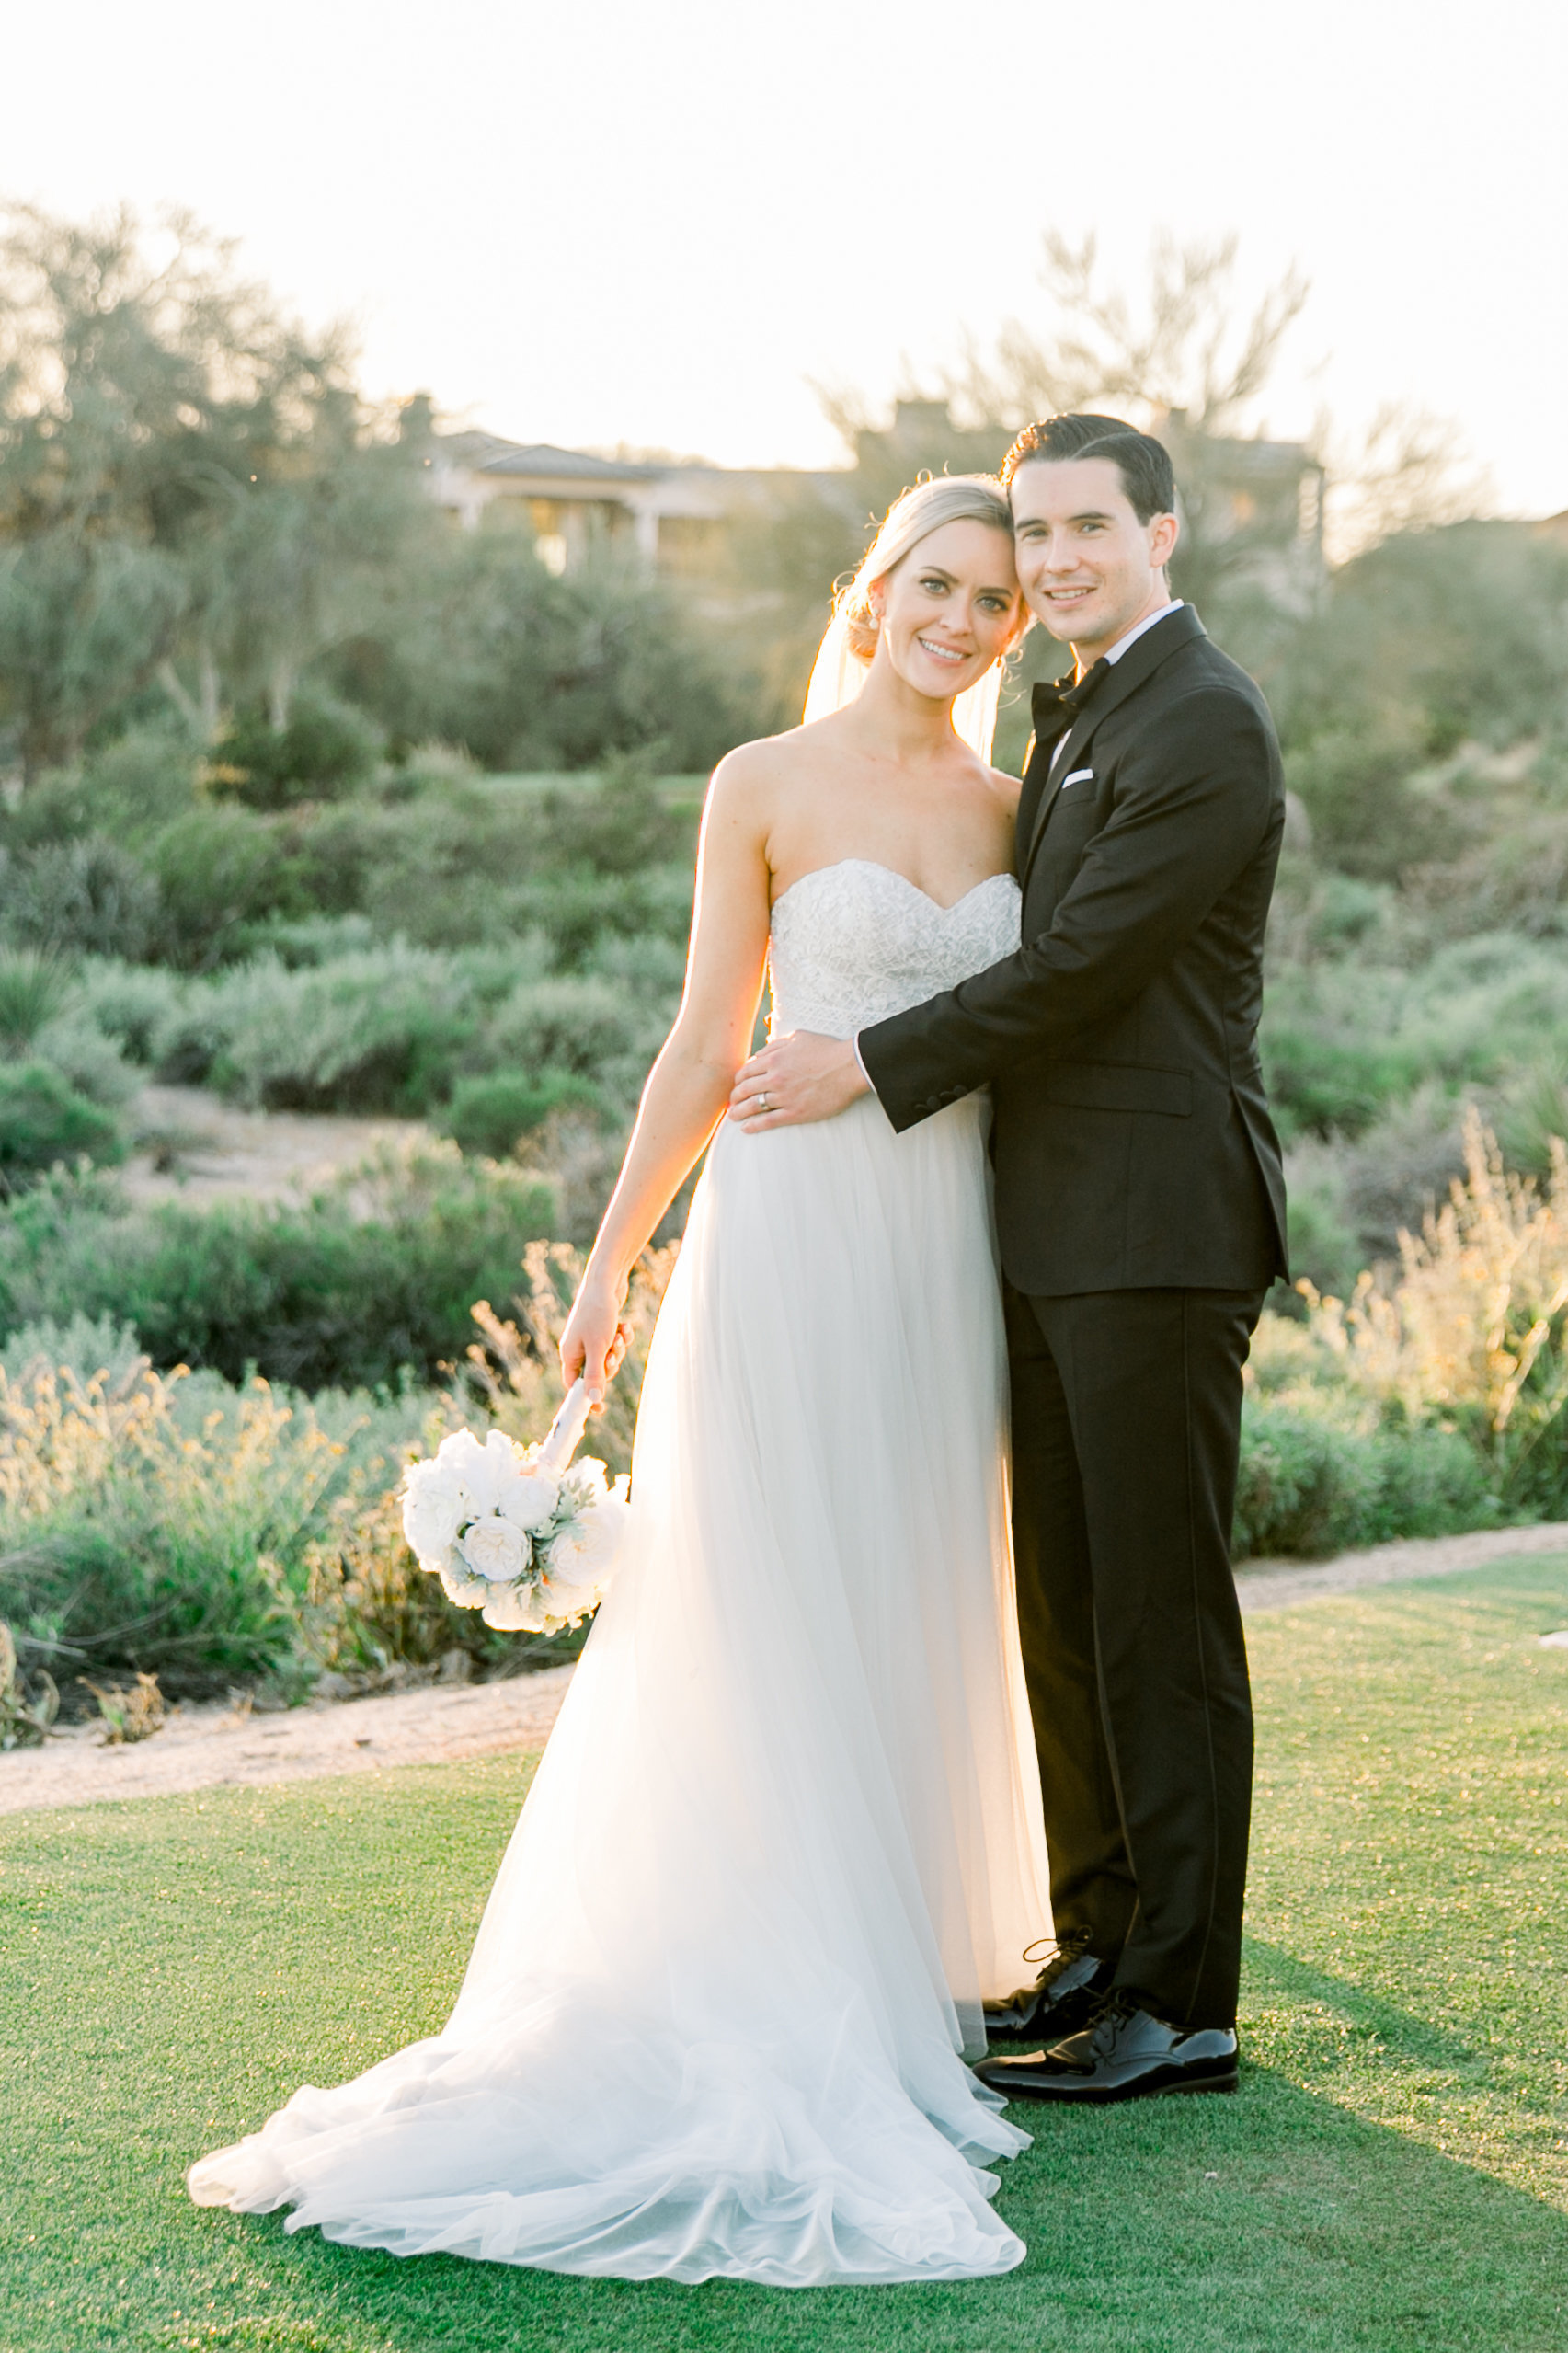 Karlie Colleen Photography - Arizona Wedding at The Troon Scottsdale Country Club - Paige & Shane -677